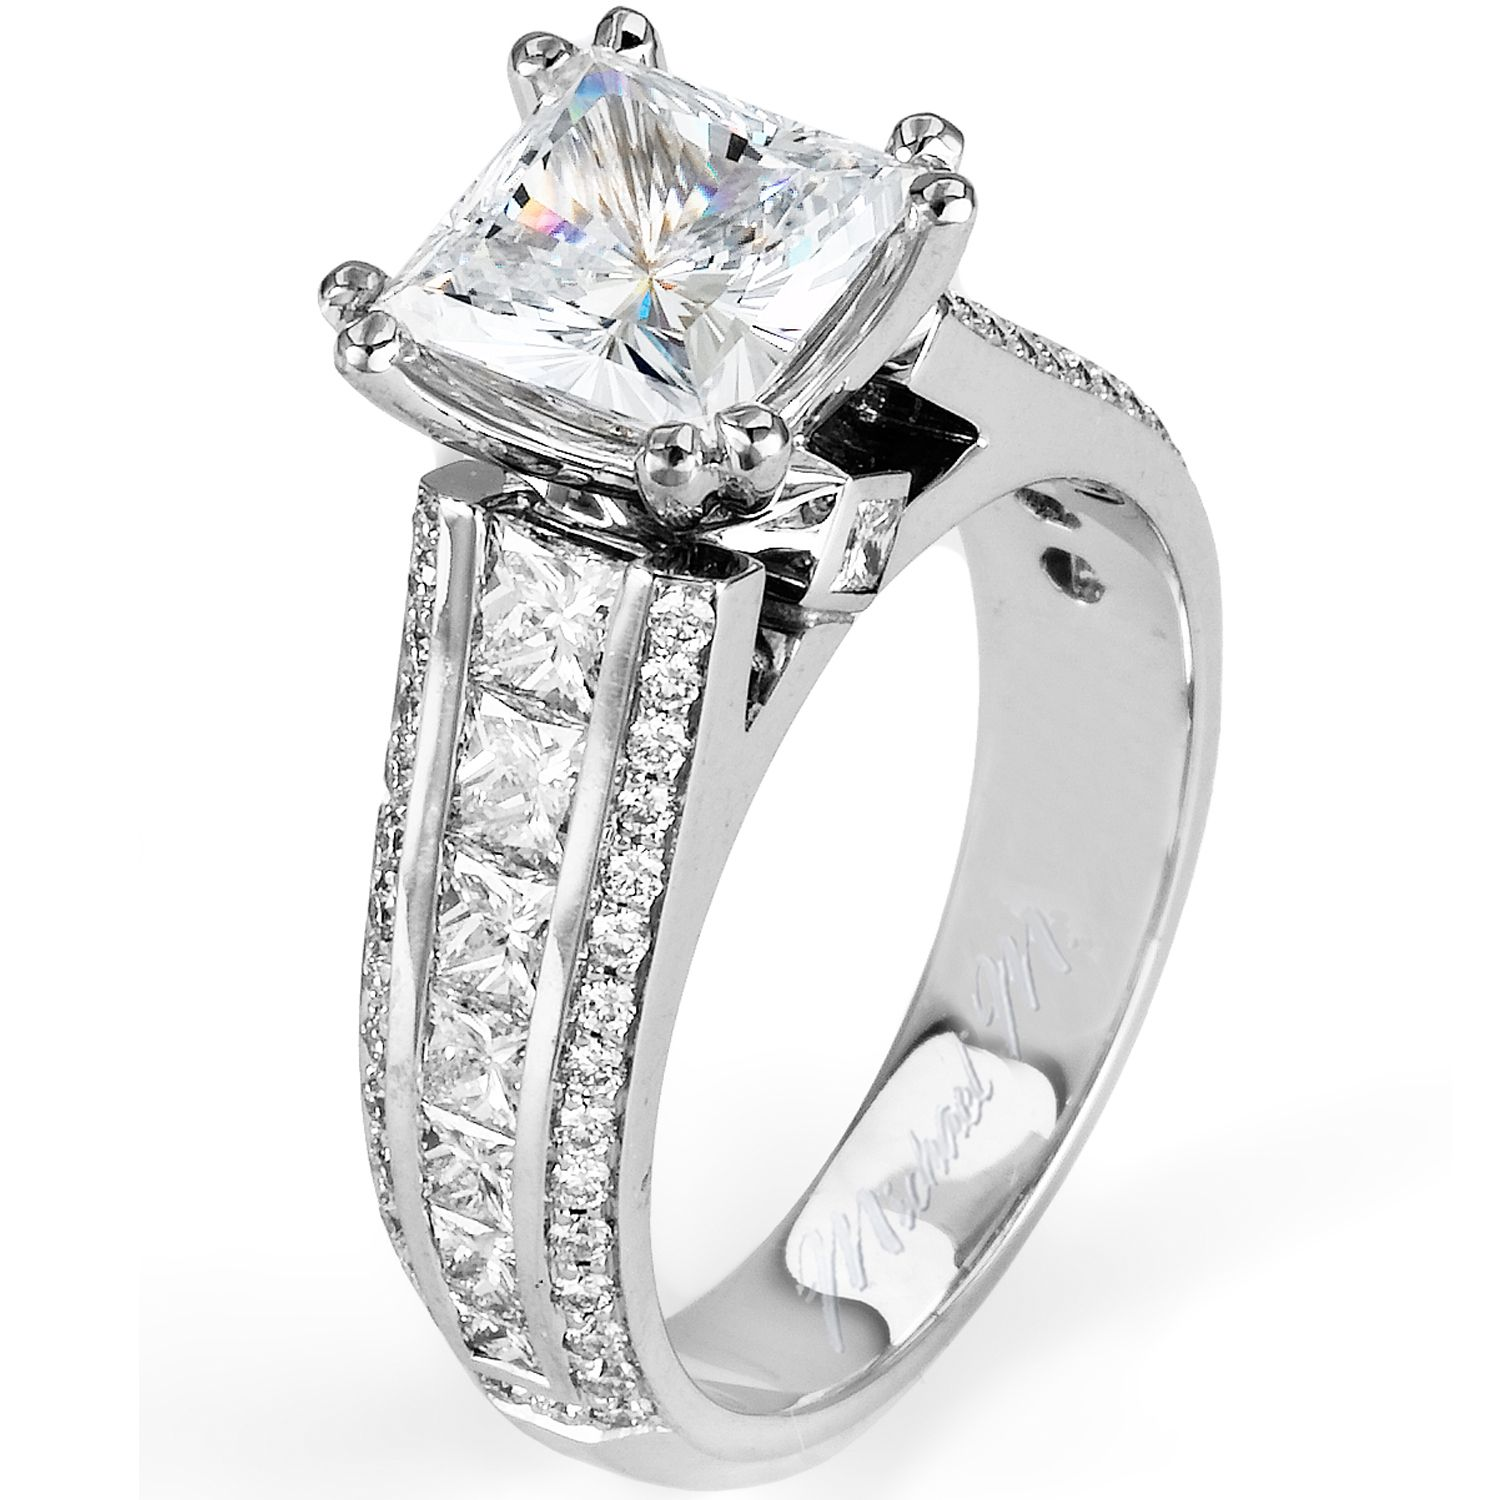 Michael M Triple Row Diamond Engagement Ring Features Princess Cut Channel Set In Between Two Rows Of Pave Round Brilliant Diamonds As Well: Big Wedding Rings Princess Cut Rock At Reisefeber.org